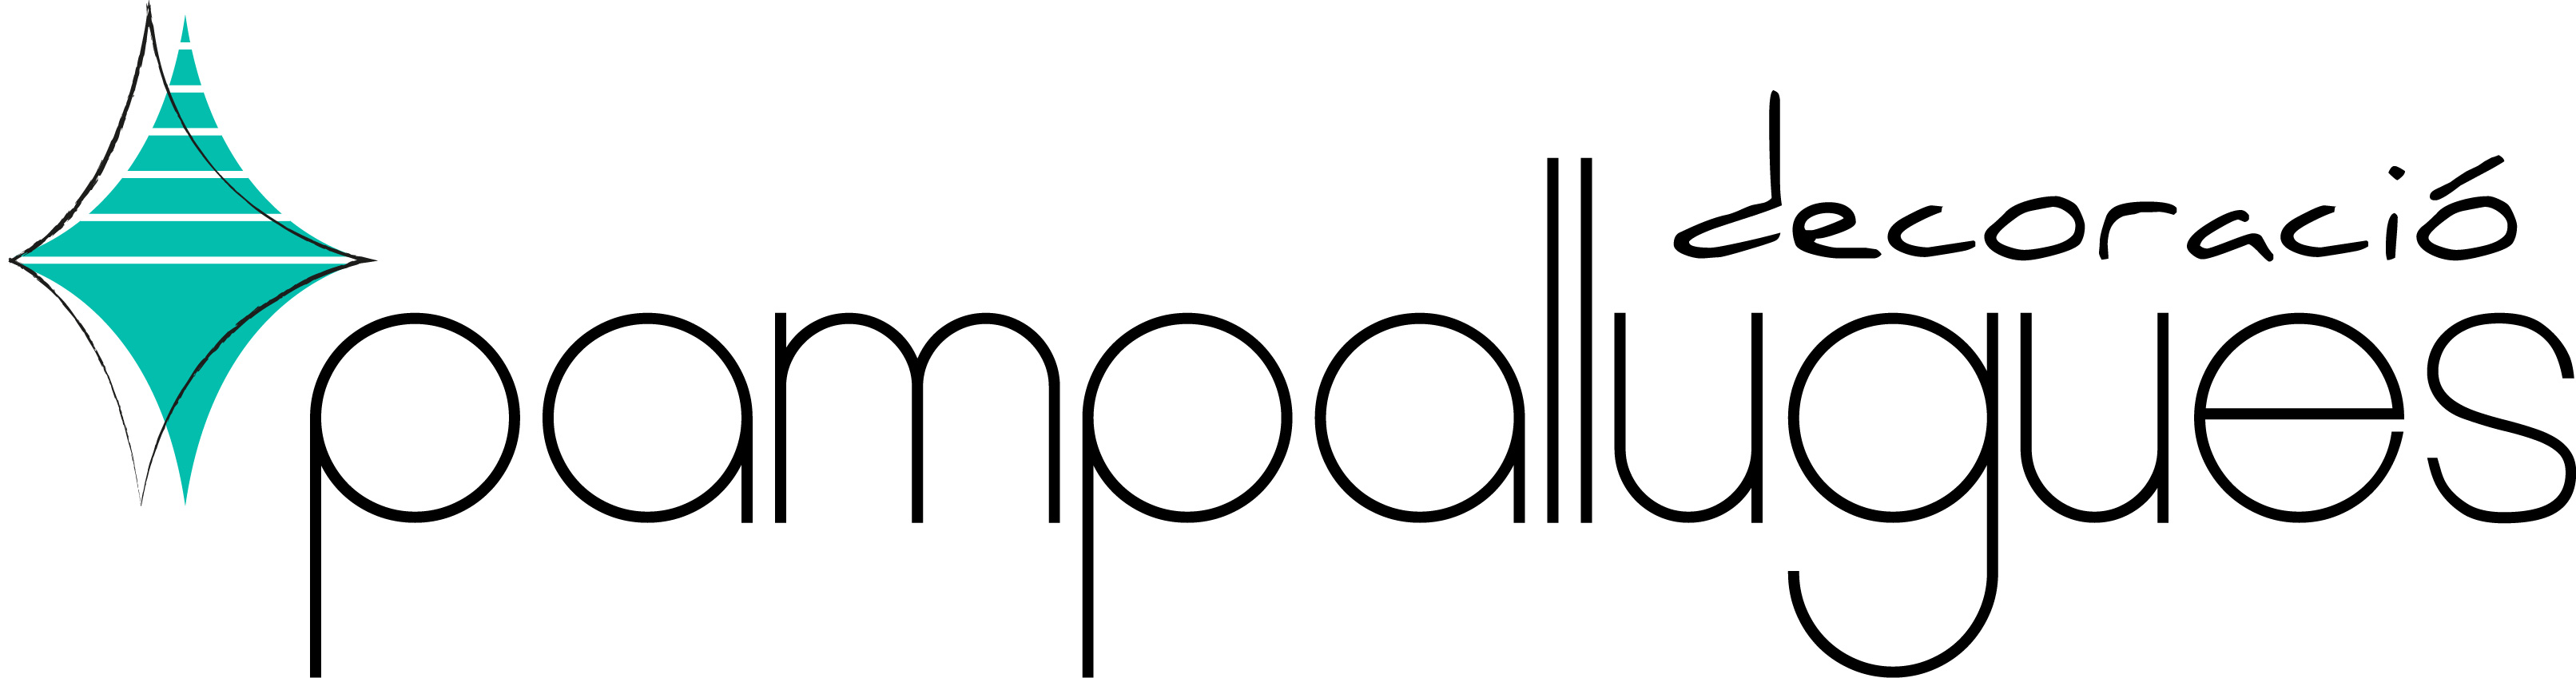 logo-pampallugues-decoracio